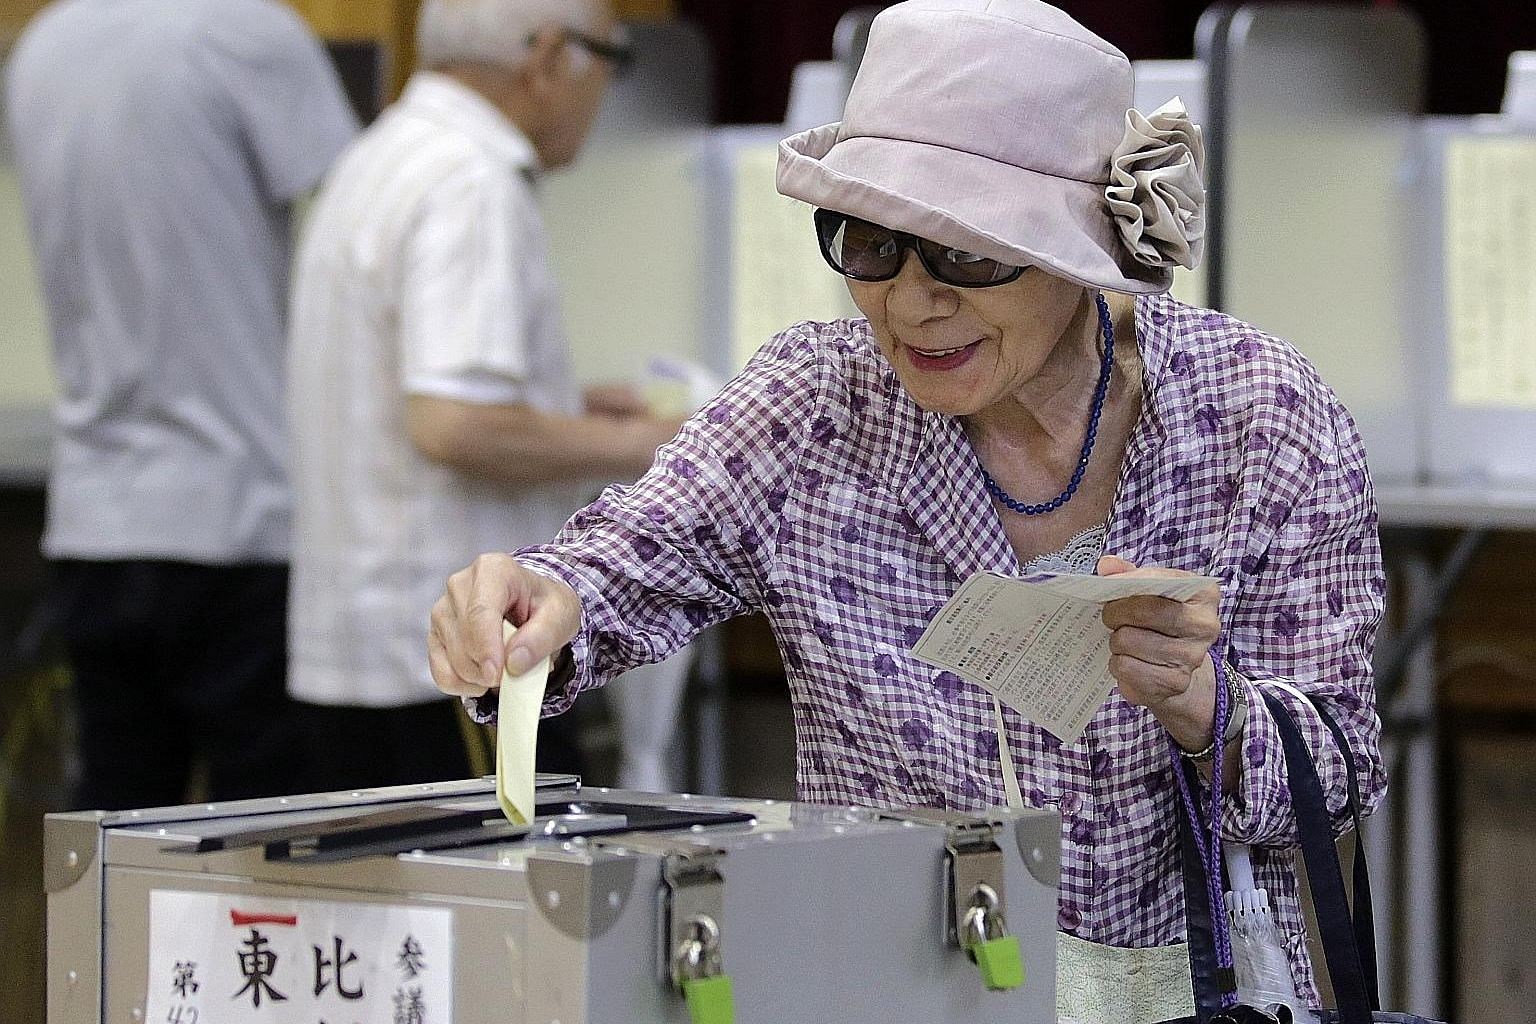 A Japanese voter casting her ballot at a polling station in Tokyo yesterday. Voter turnout is expected to fall under 50 per cent for the first time since 1995 amid public apathy, despite some businesses closing stores to allow staff to vote and eater